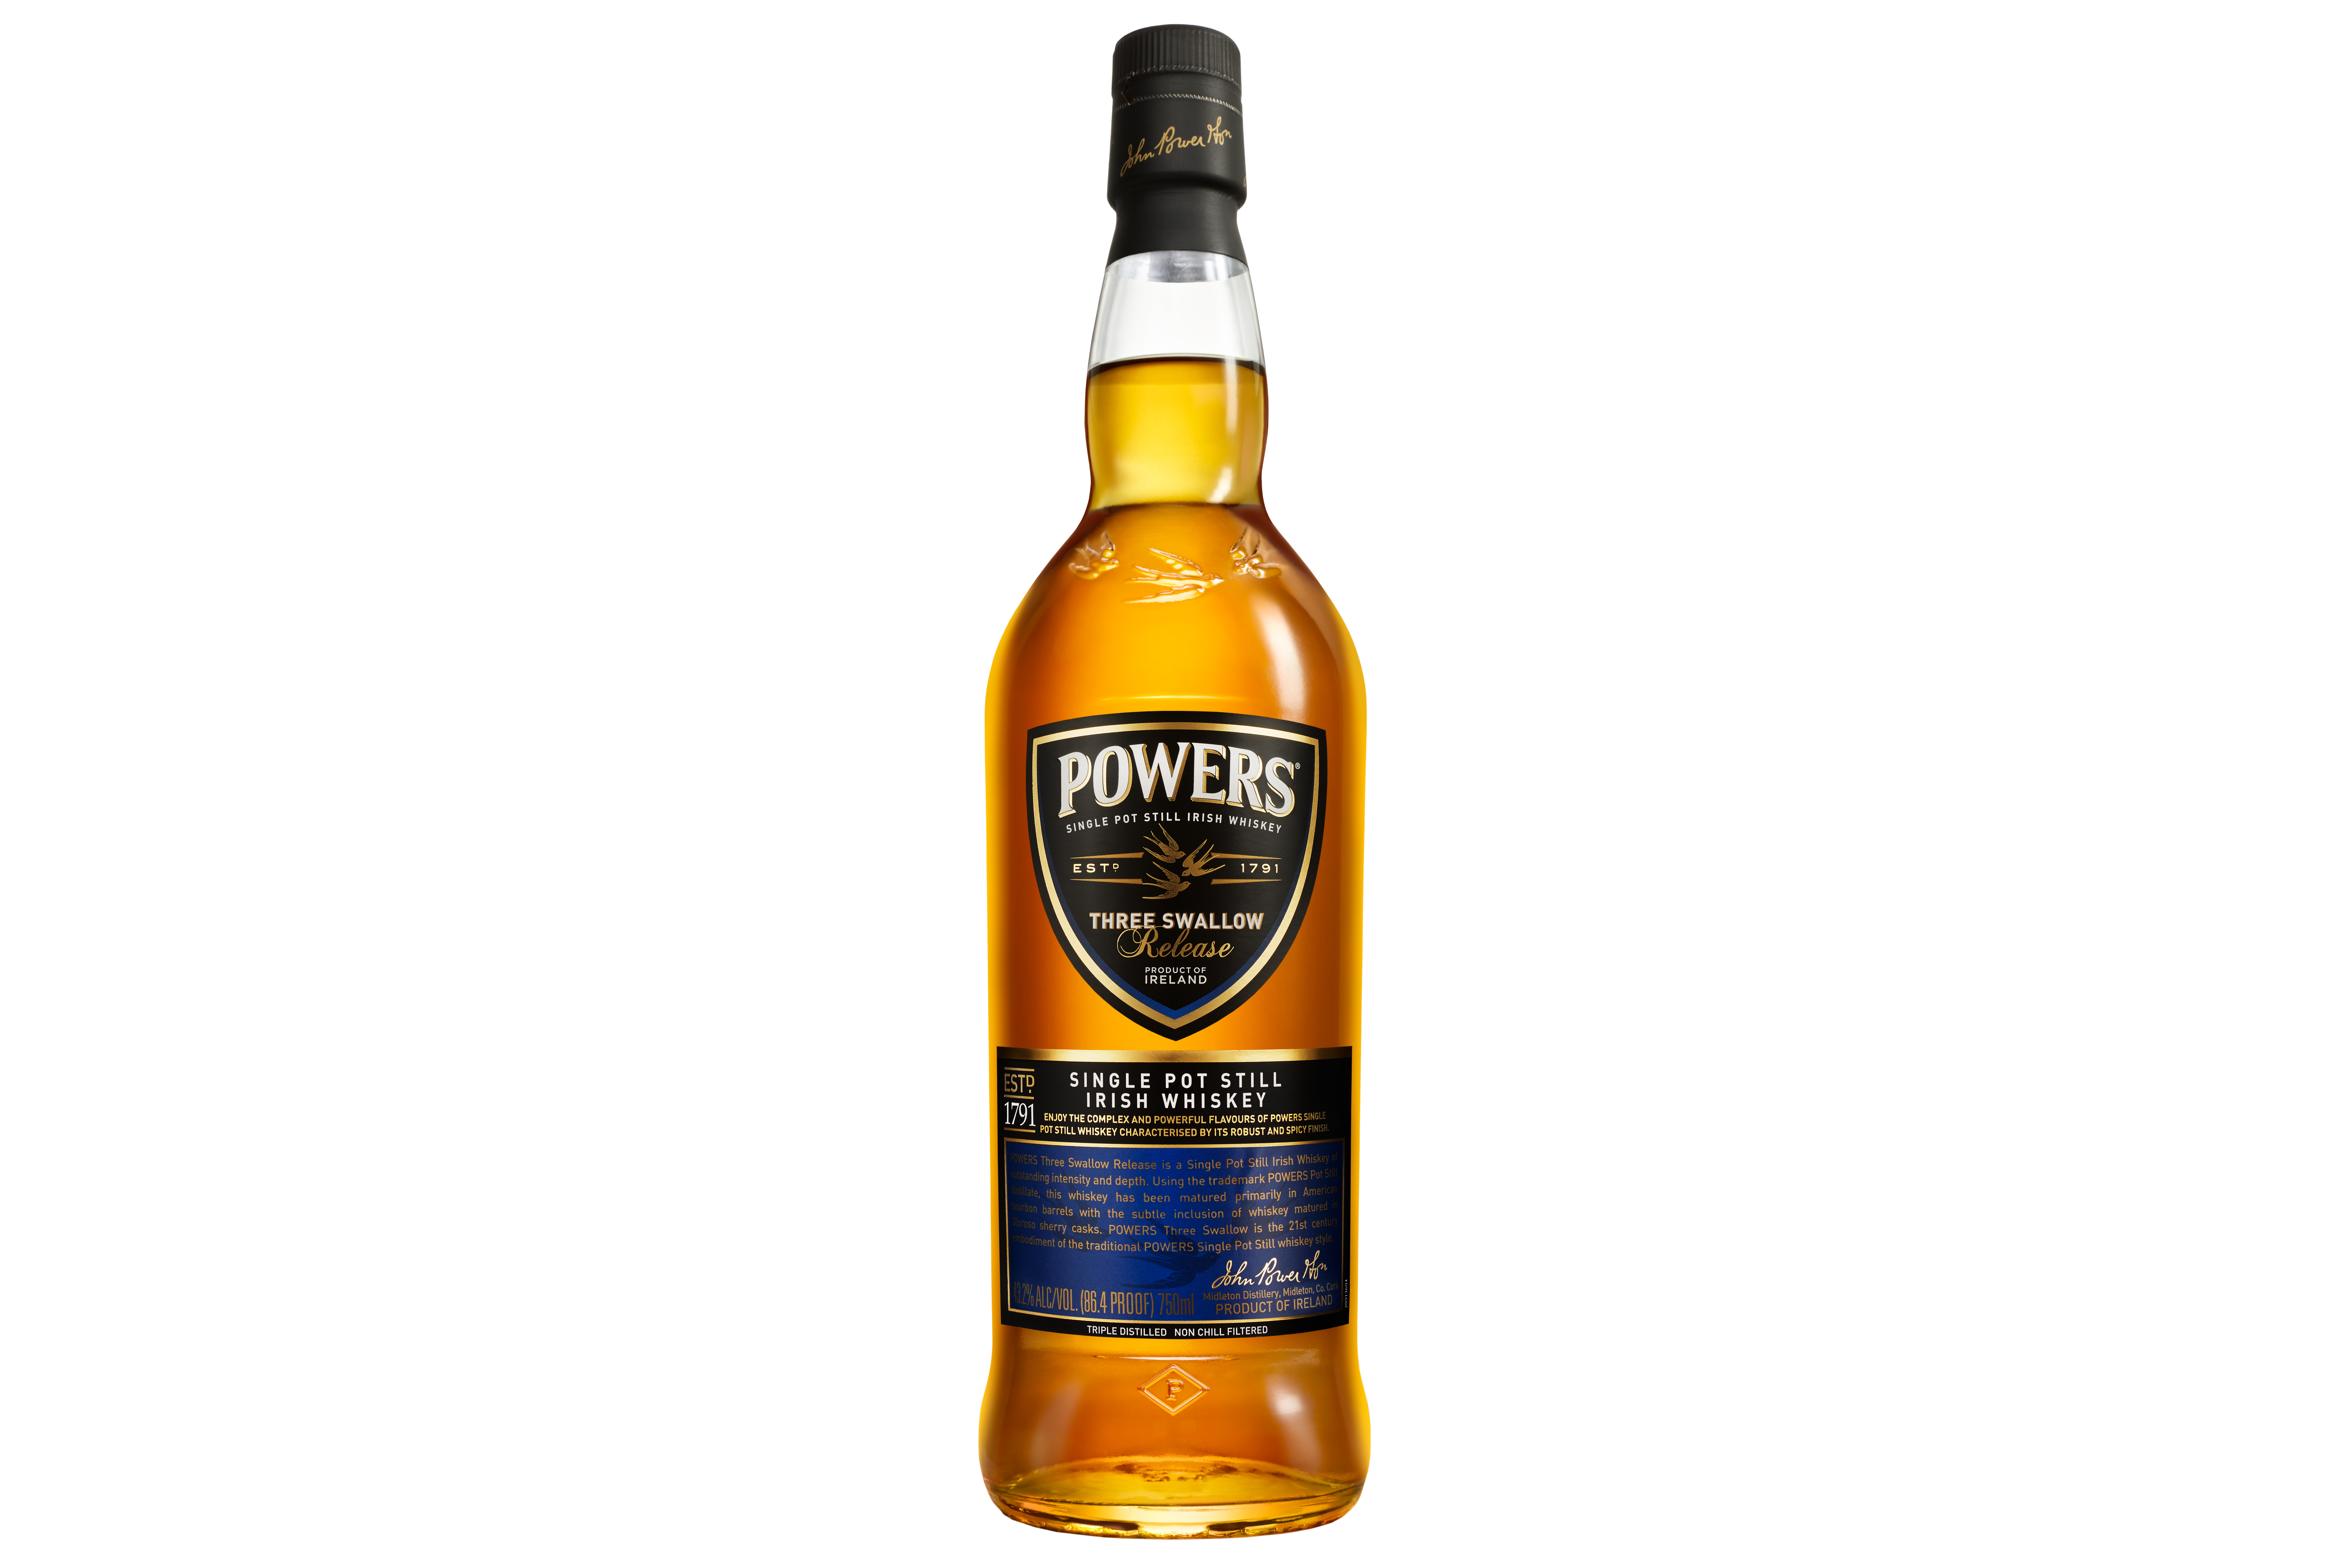 Powers-Three-Swallow-750ml-43-white